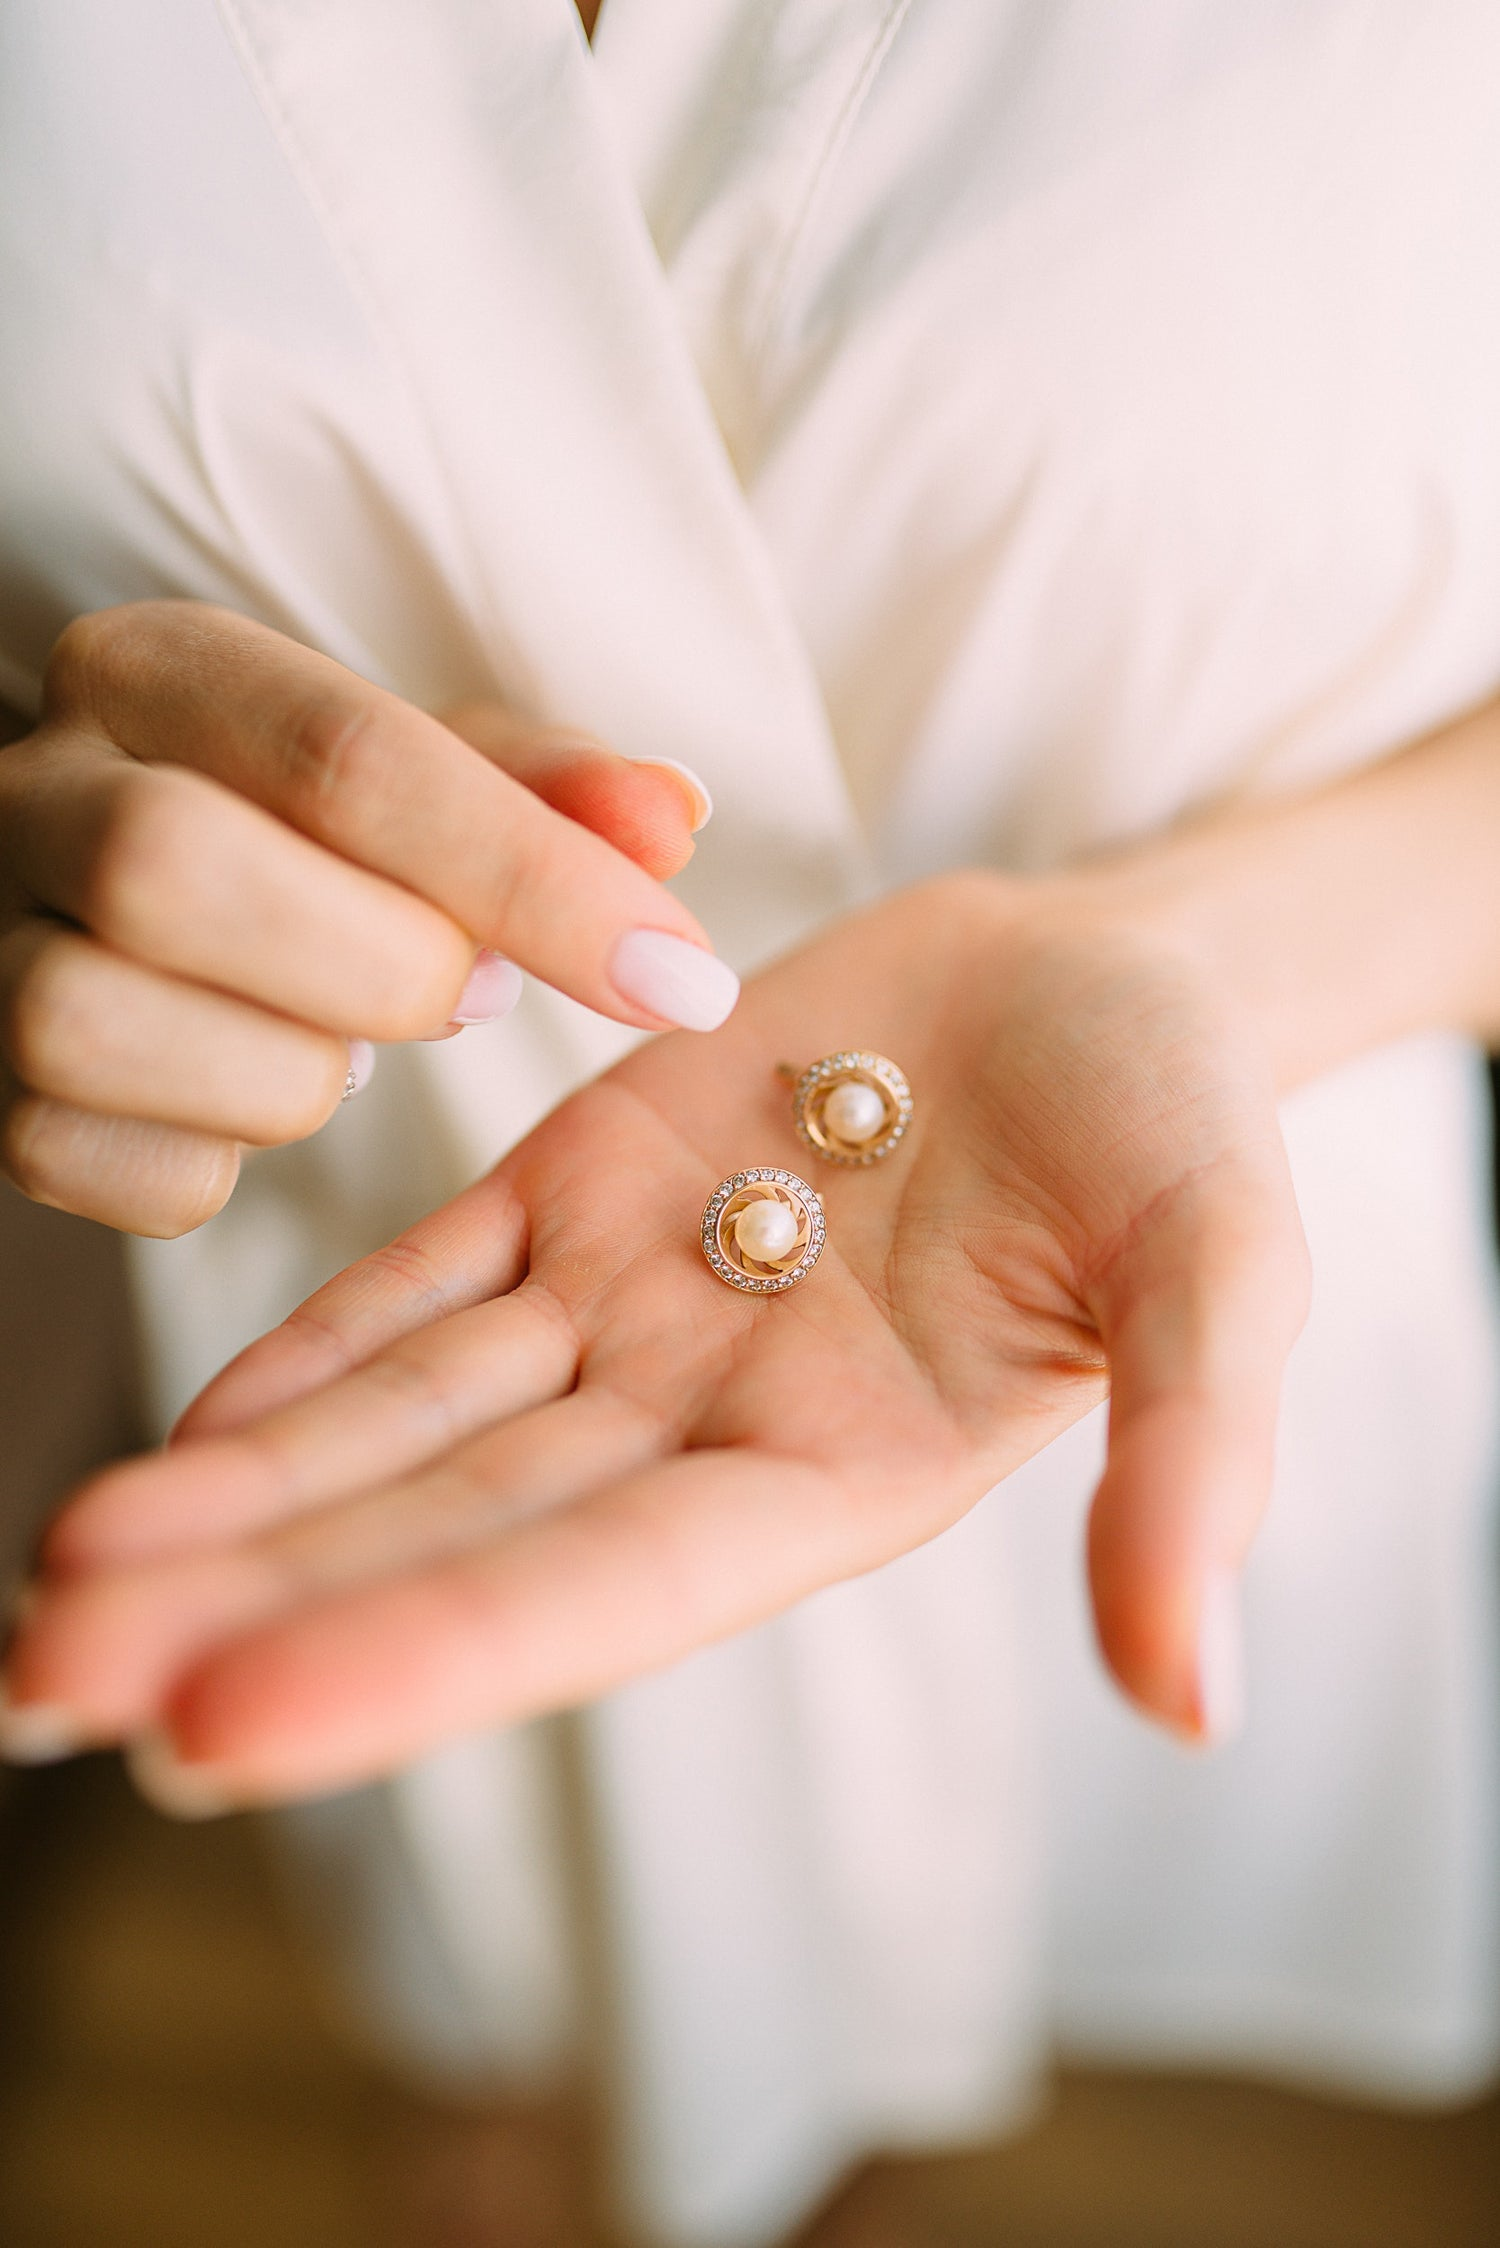 blog post ideas for jewelry business